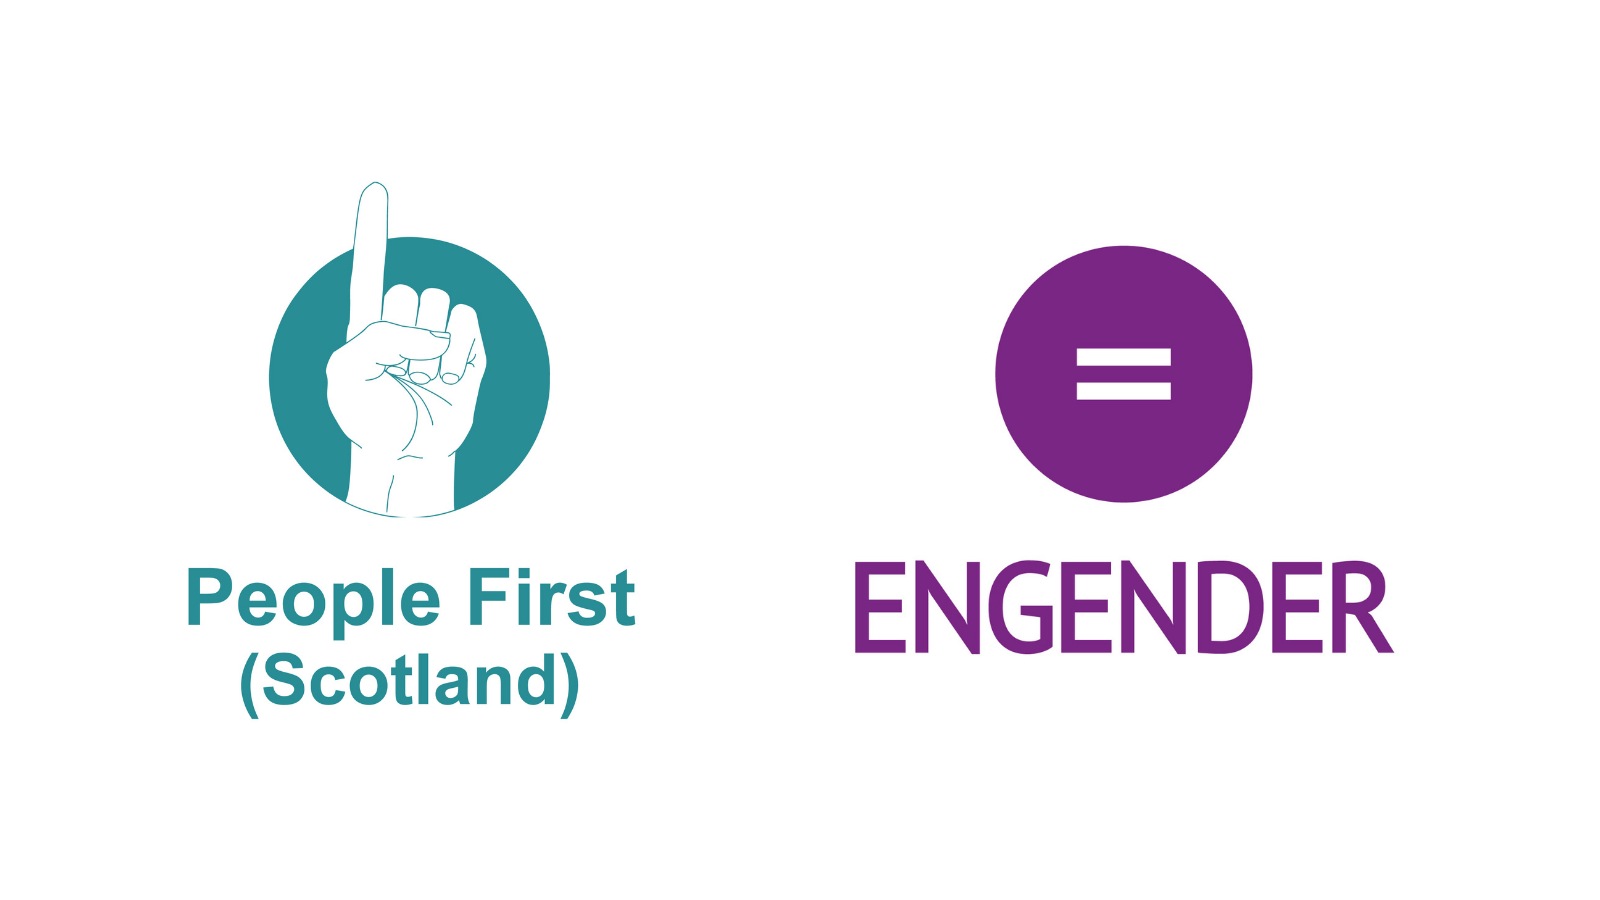 On the left hand side, People First Scotland's log